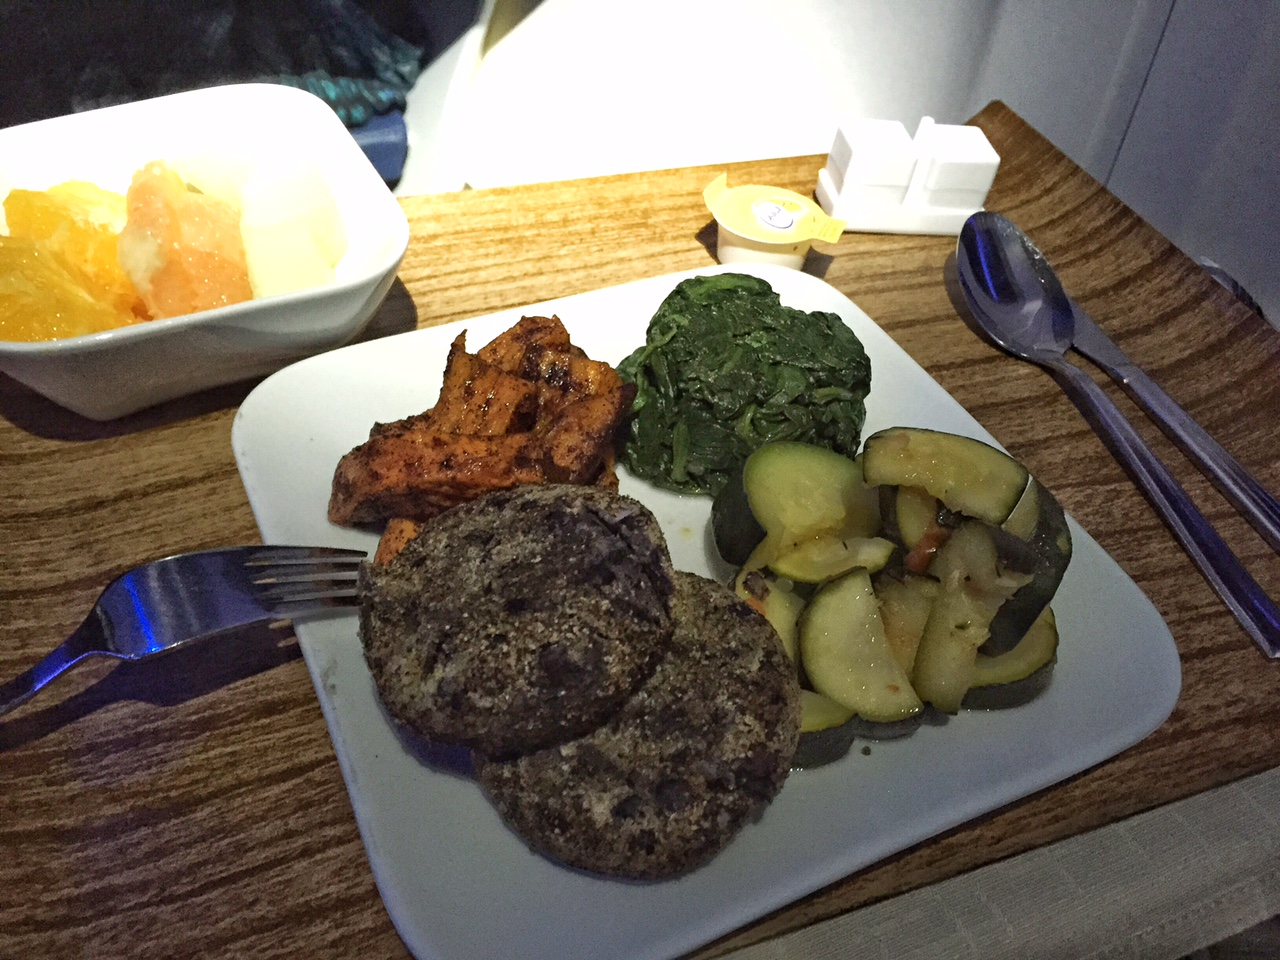 falafel patties, steamed green squash, sauteed spinach and roasted sweet potato slices